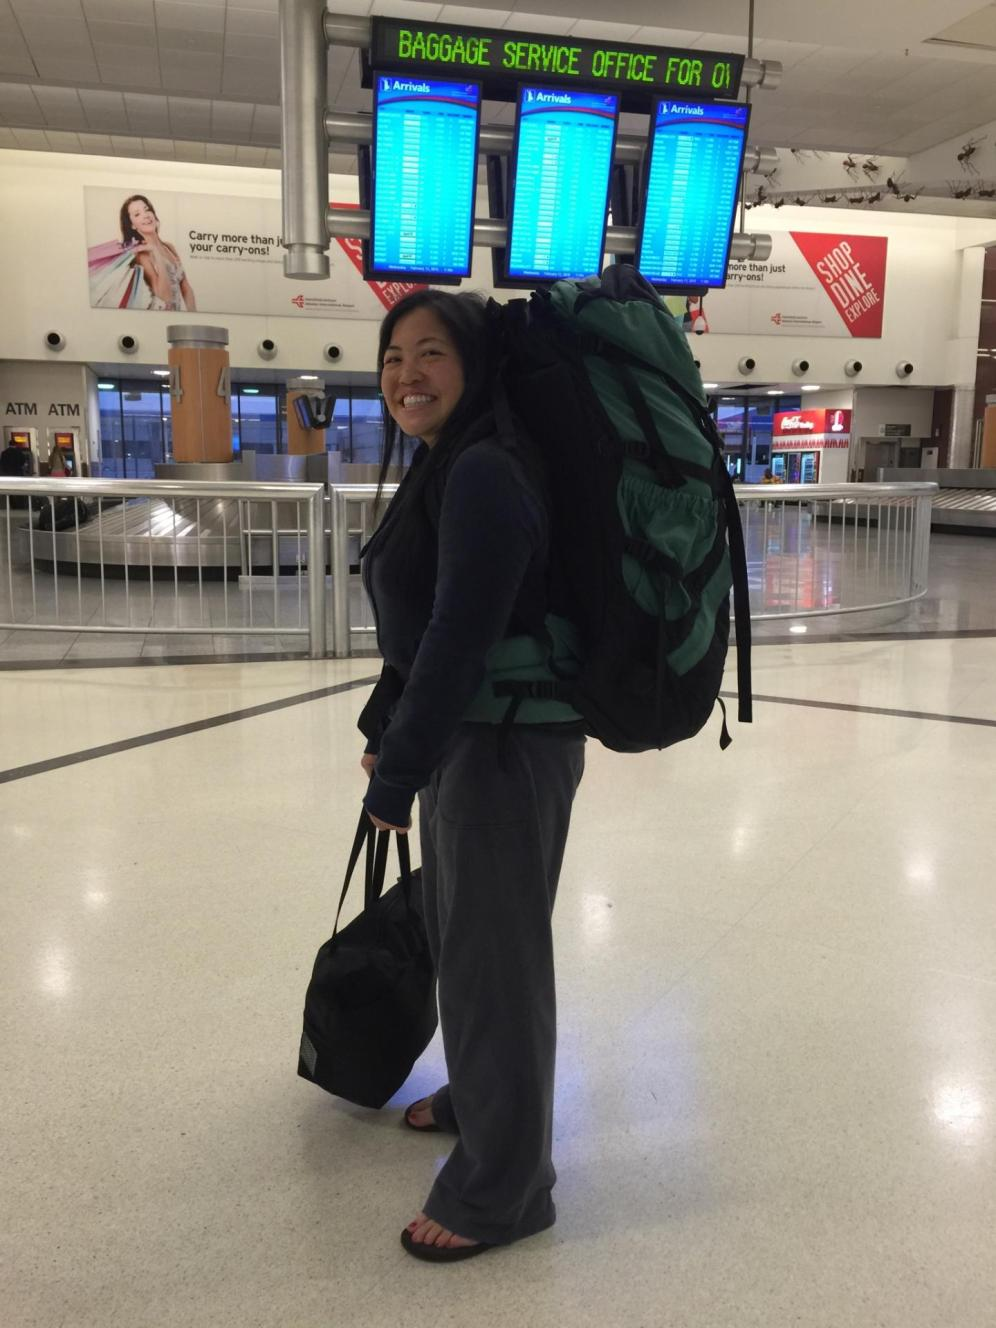 At the Atlanta aiport, getting ready for my first backpacking trip overseas! Destination: Singapore, Bangkok, Cambodia and Laos in Feb. 2015.